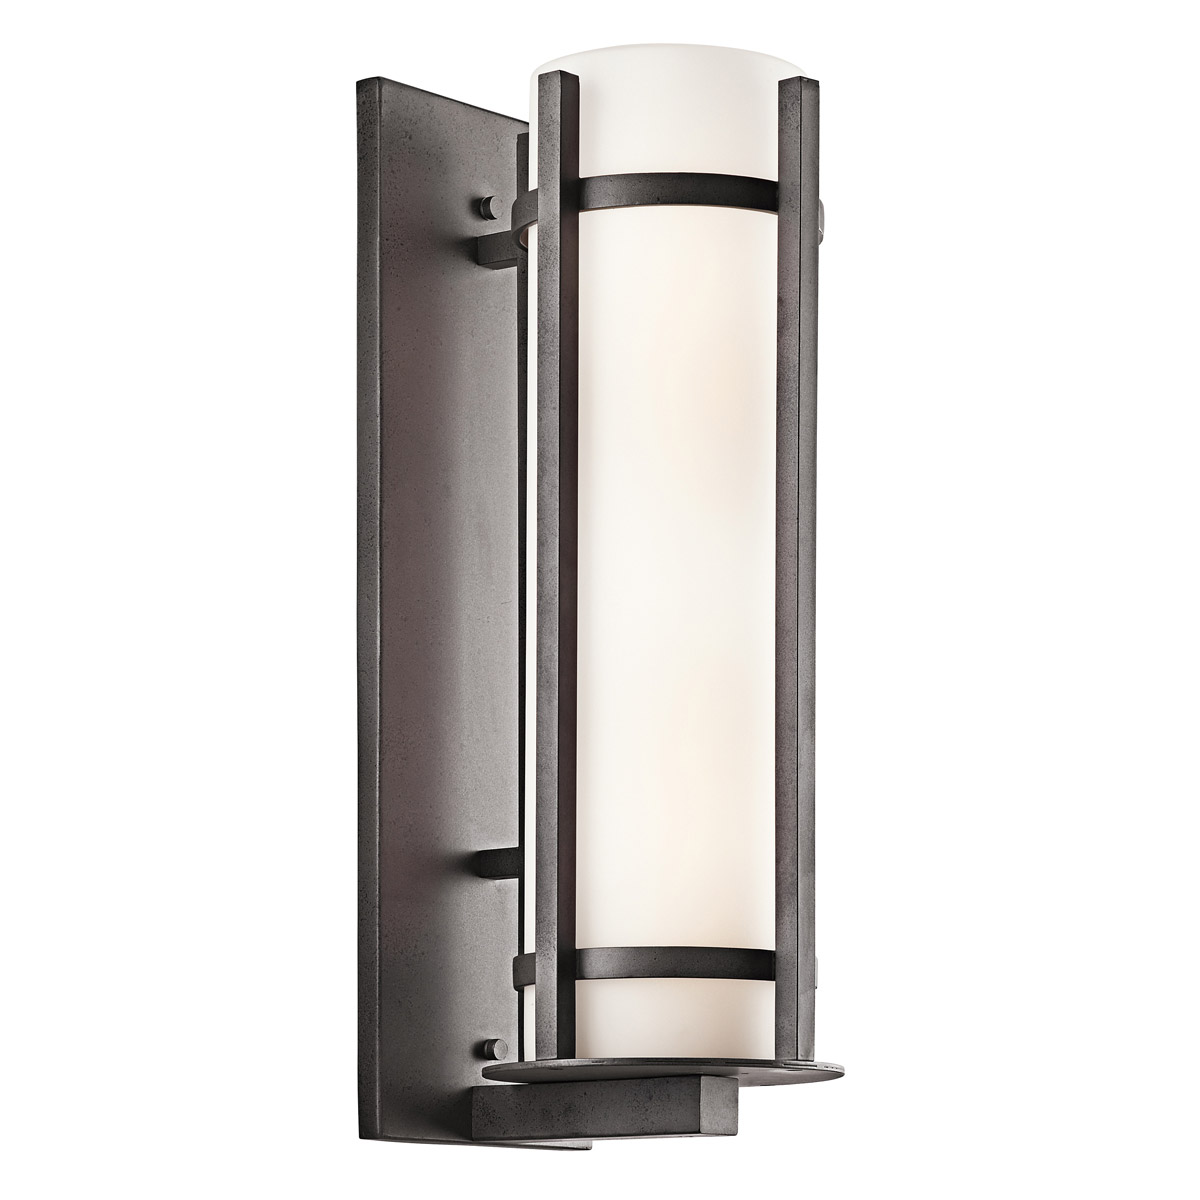 Outdoor Wall Sconce Kichler : Kichler 49121AVIFL Camden Outdoor Wall Sconce